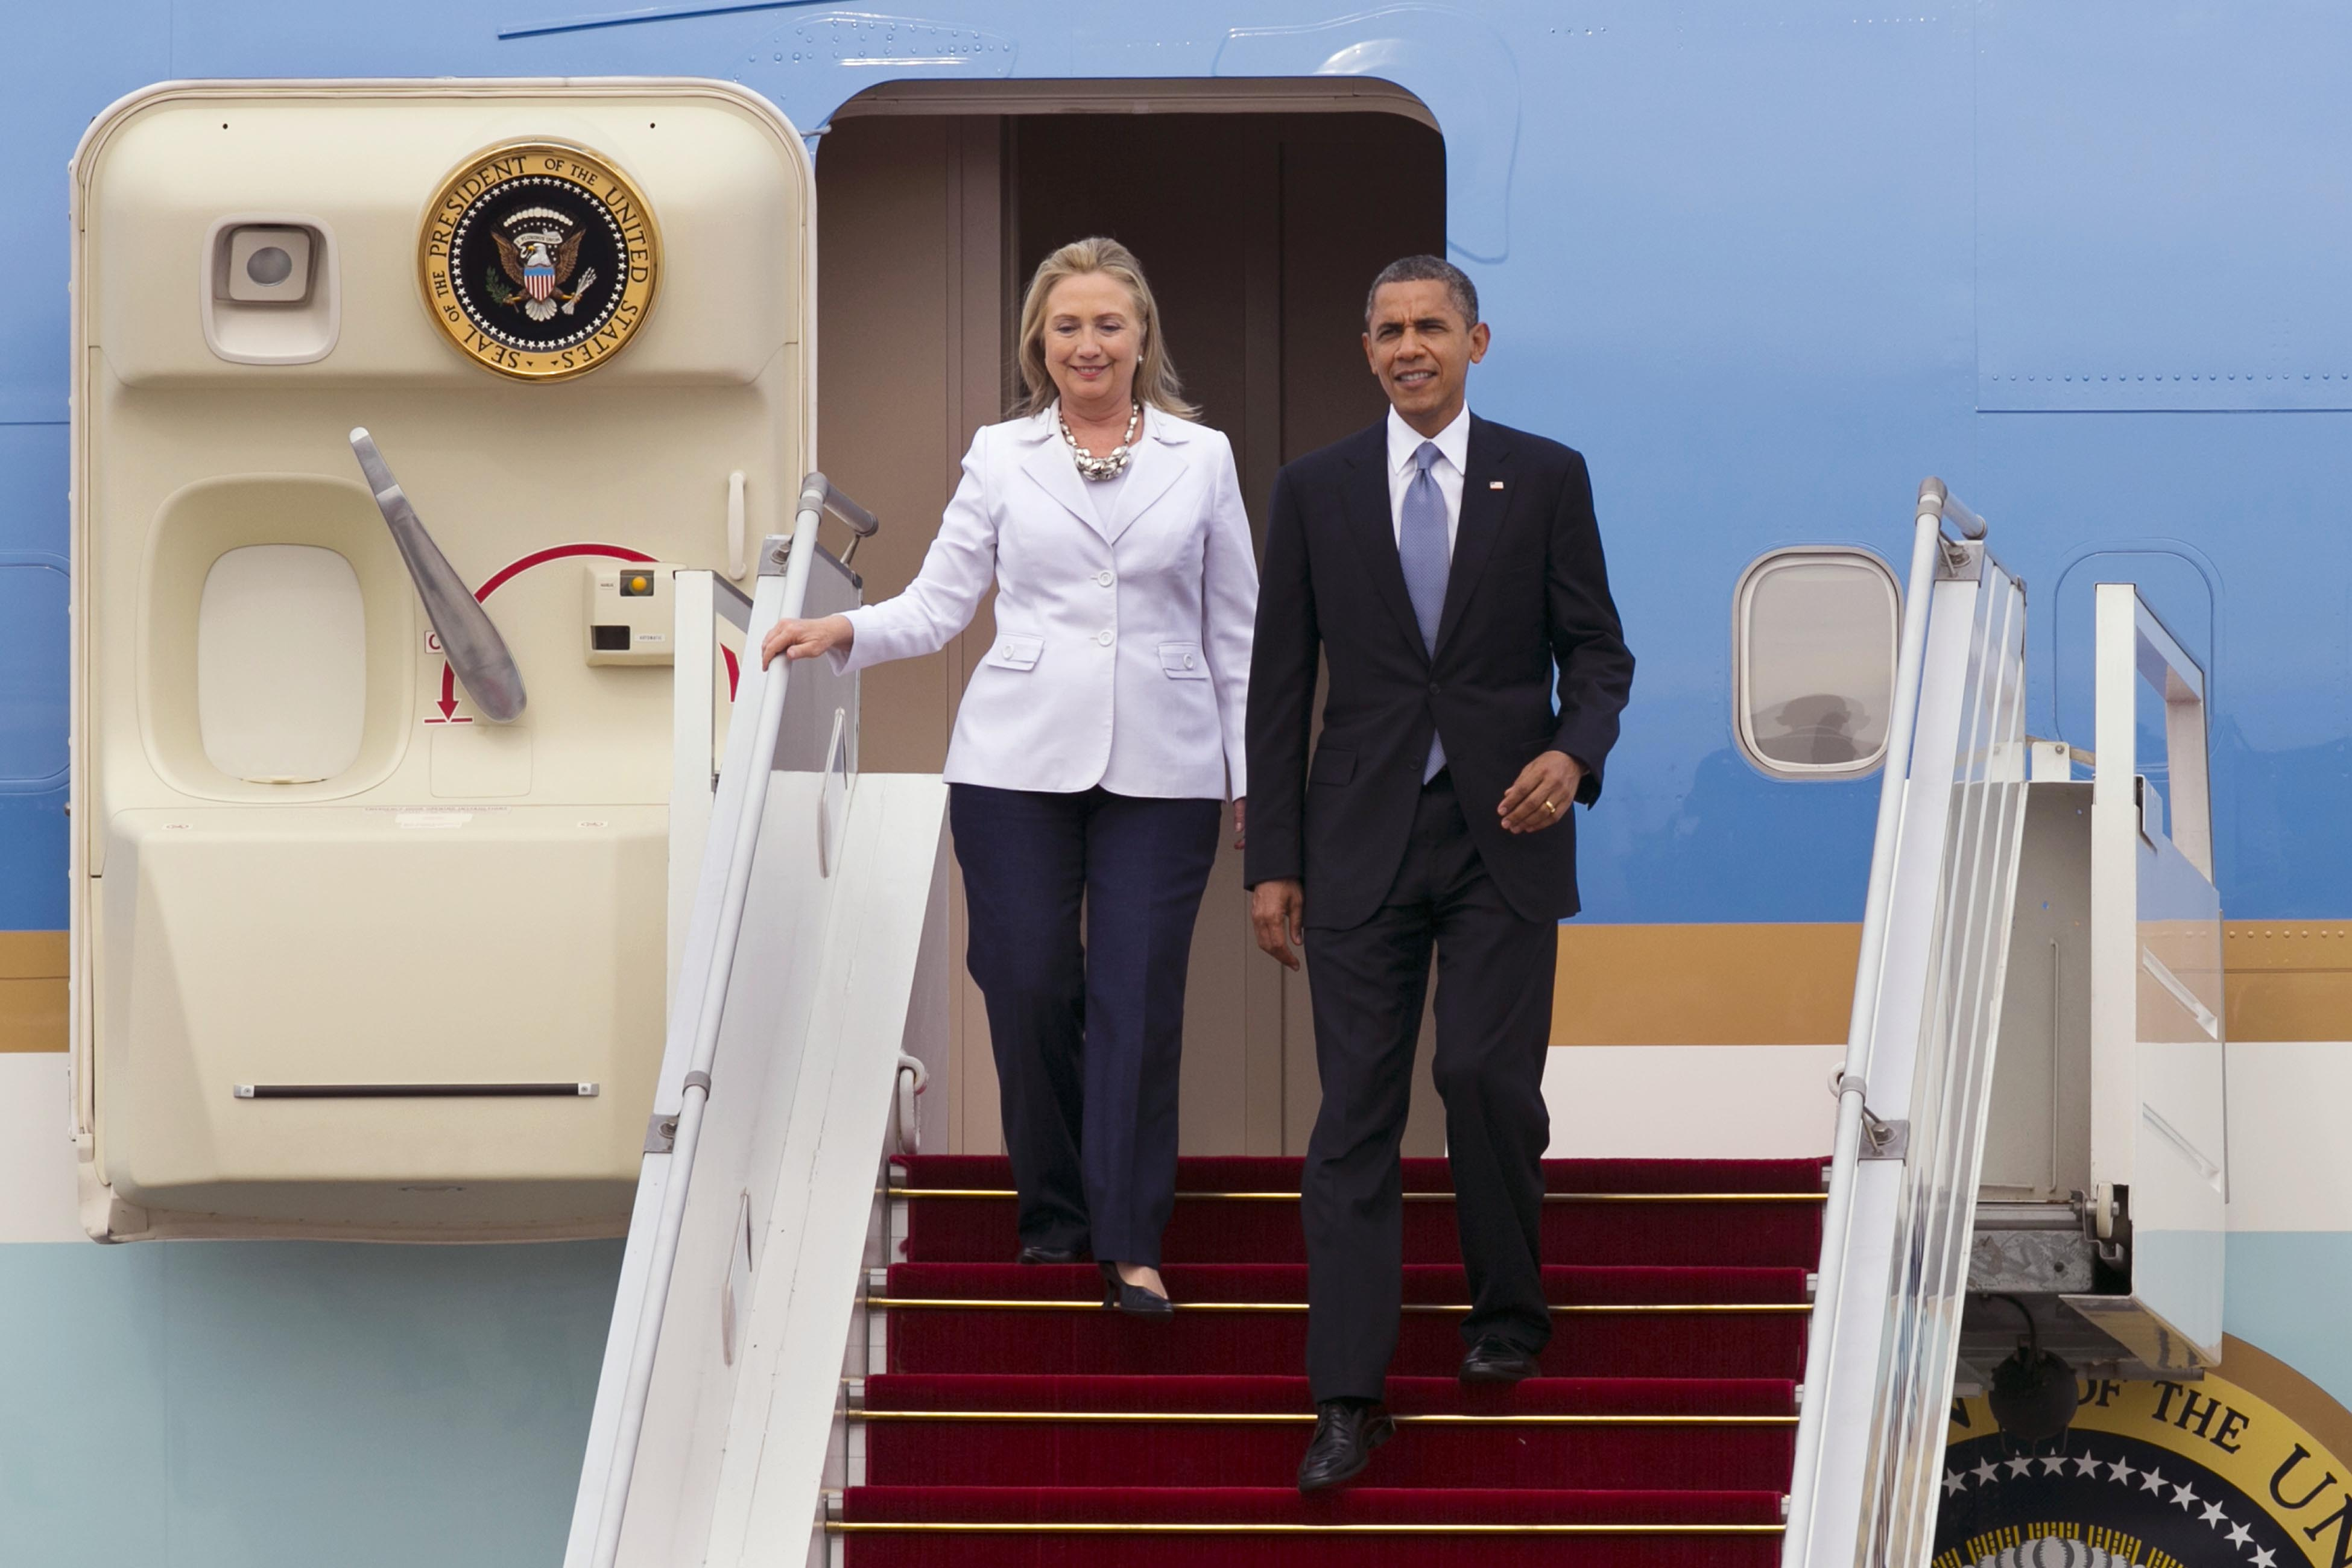 November 2012 President Barack Obama and then-Secretary of State Hillary Clinton arrive at Yangon International airport during his historical first visit to the country on Nov. 19, 2012 in Yangon, Myanmar.